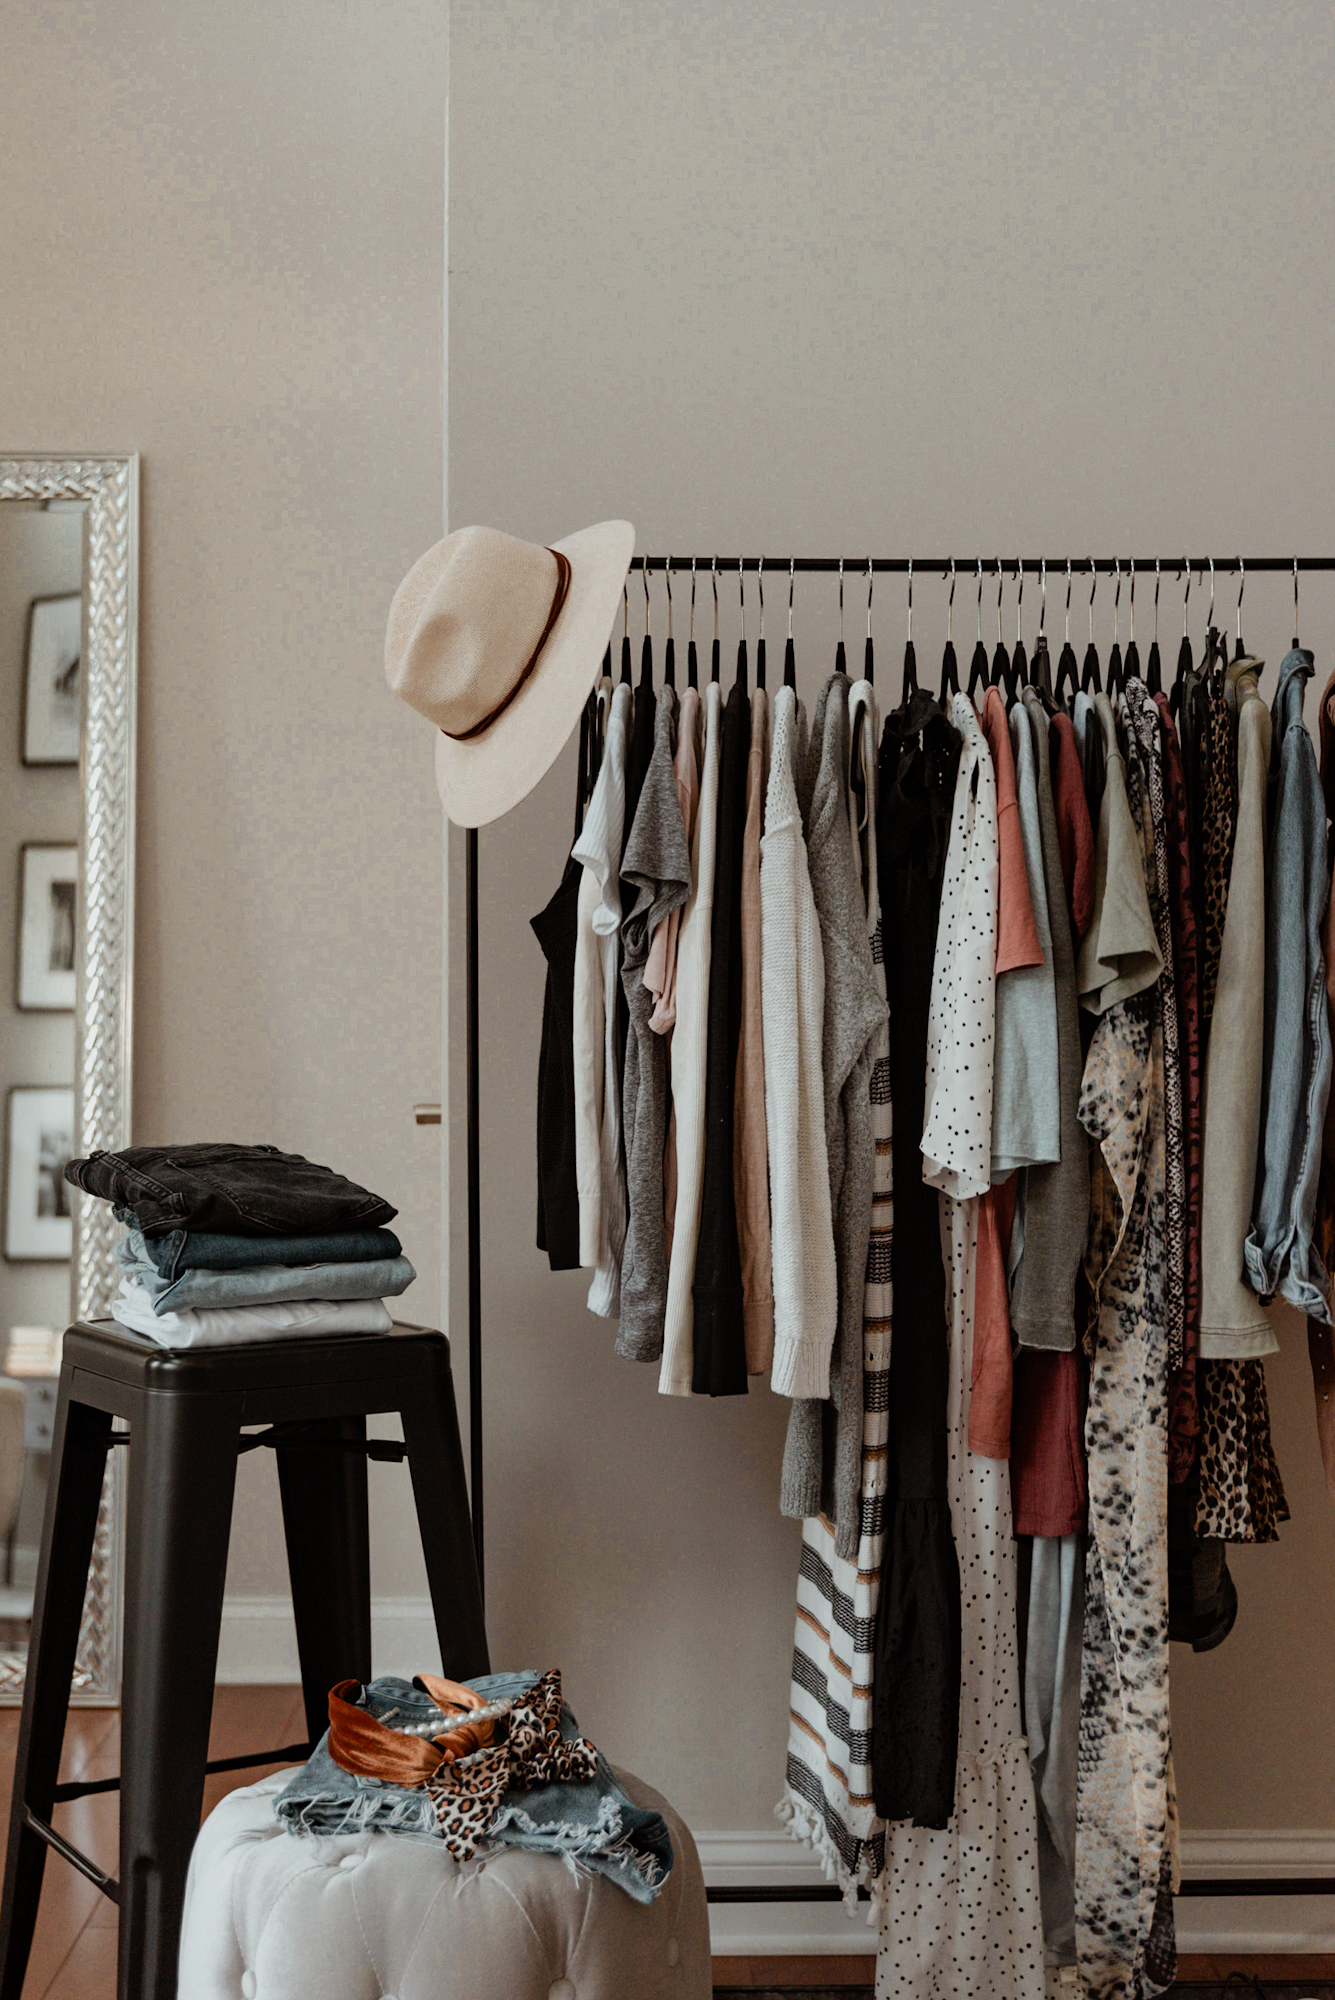 A sample capsule wardrobe including jeans, t shirts, sweaters, dresses, and accessories.